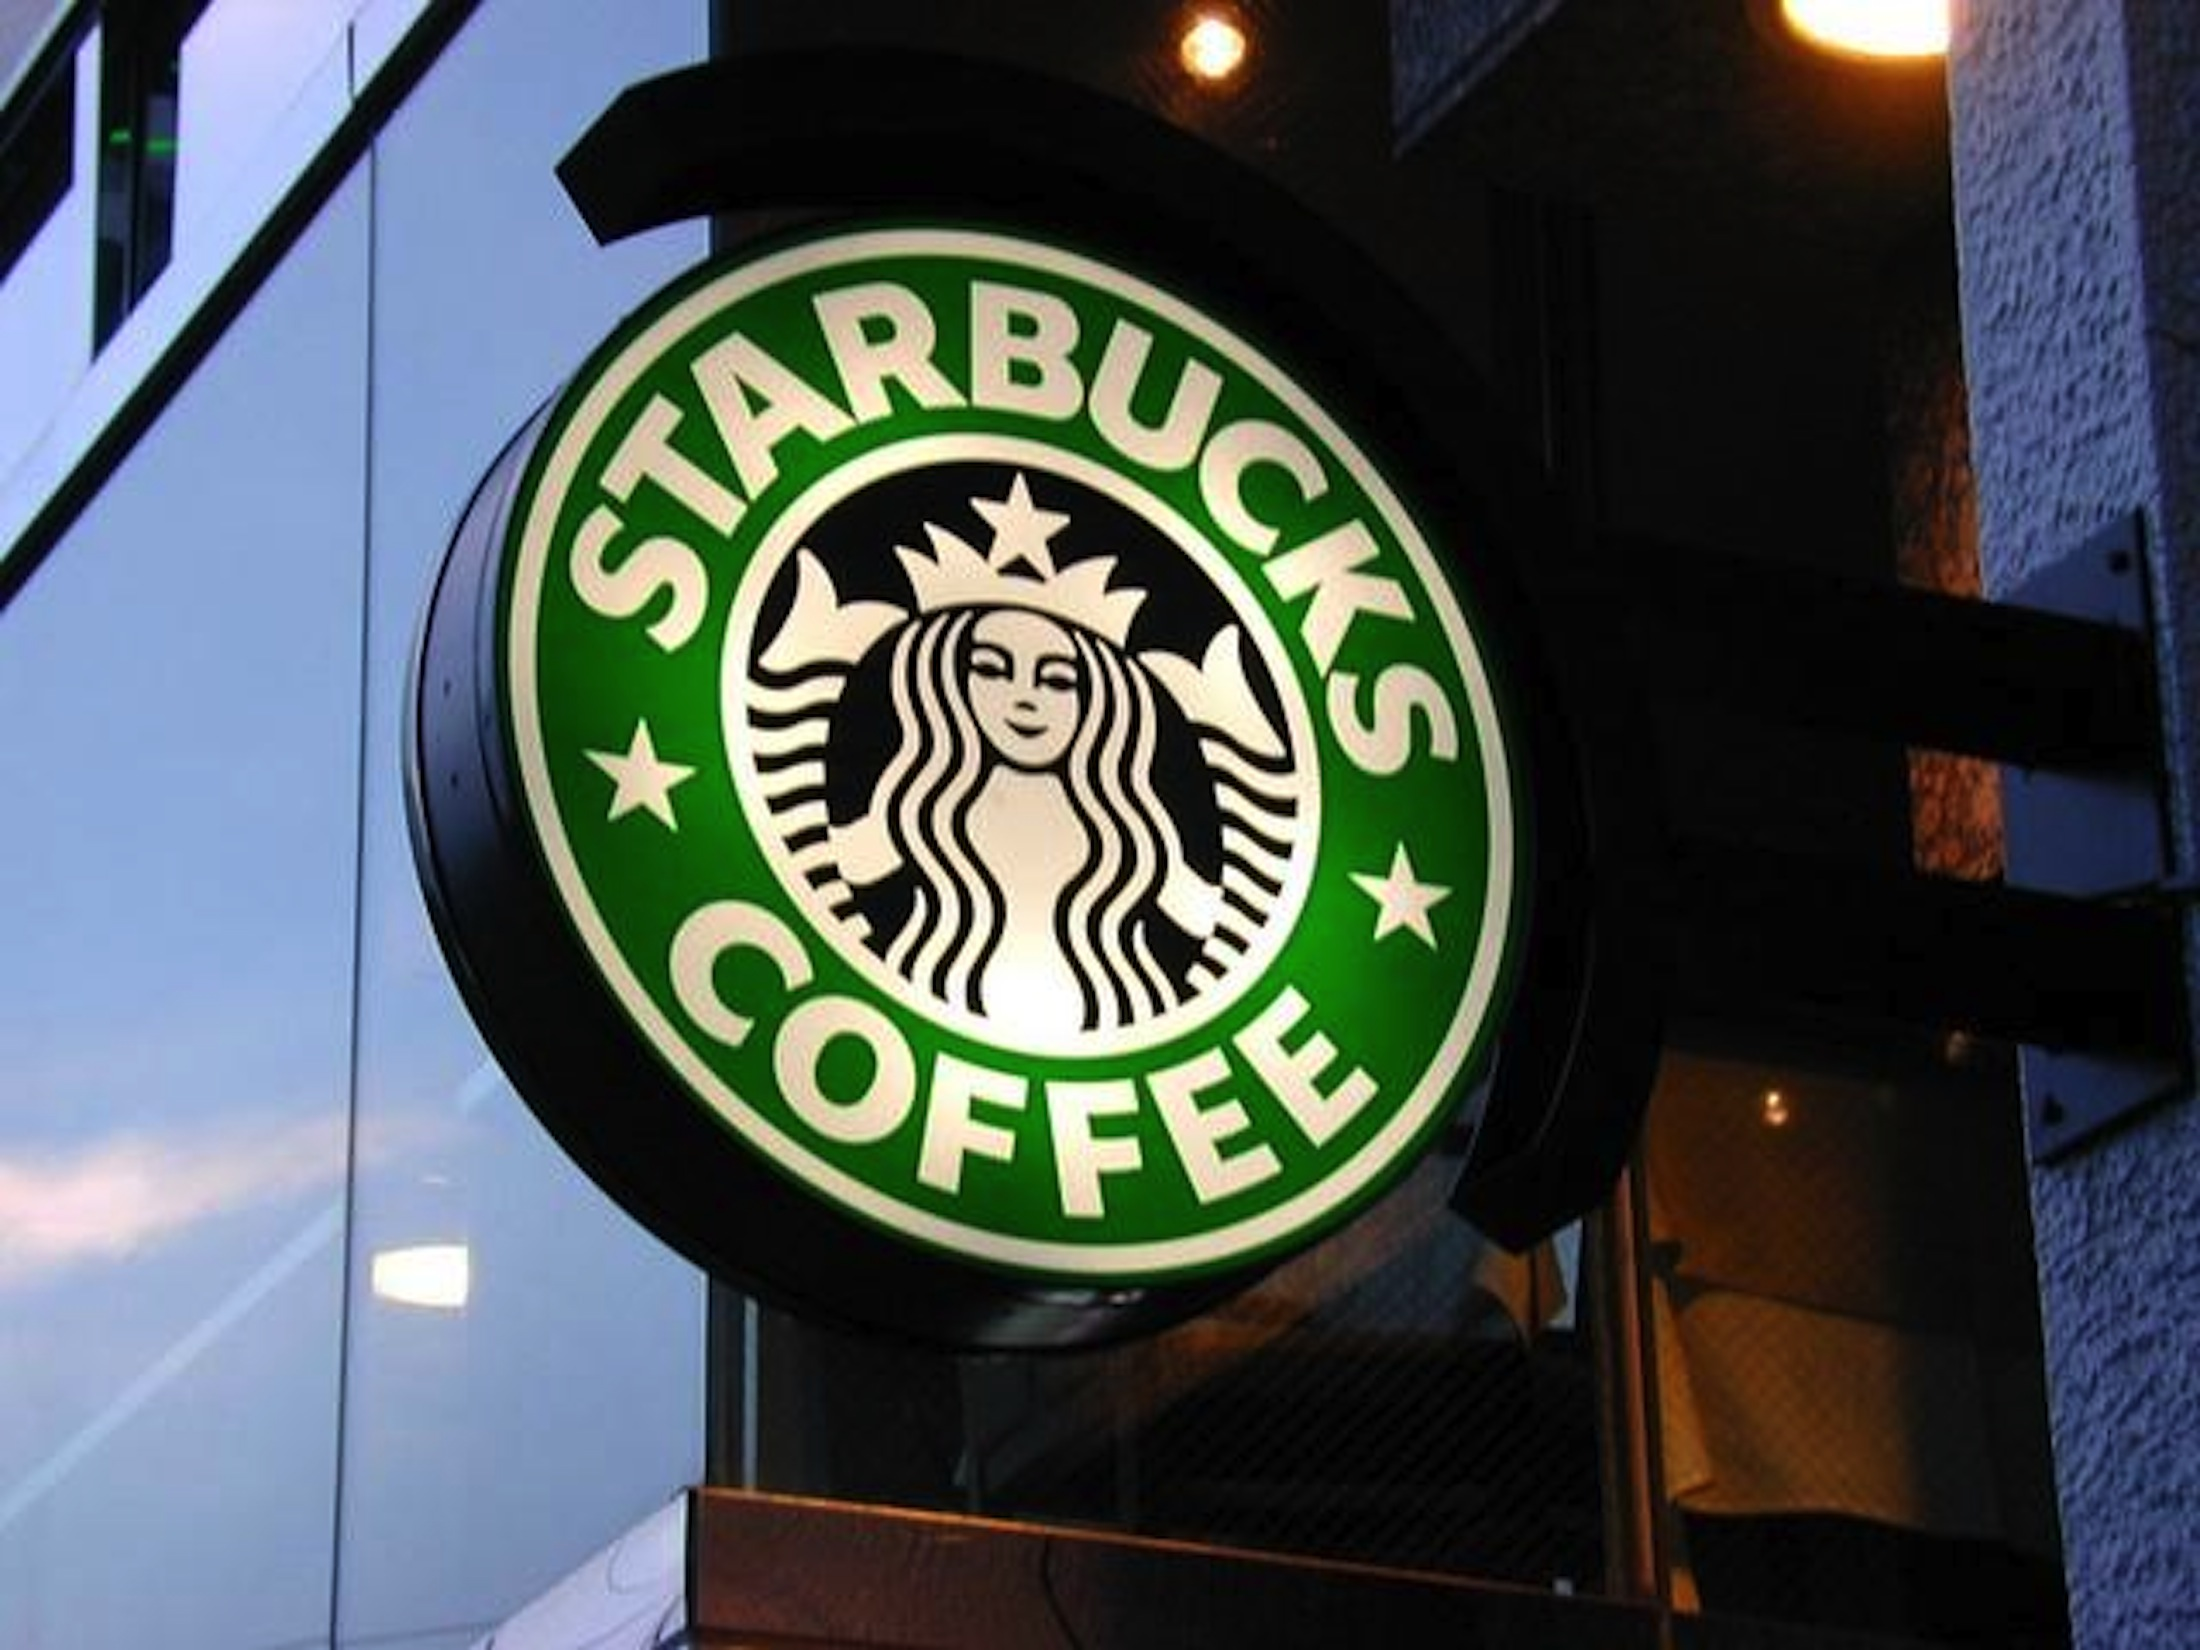 UConn's Waterbury campus will welcome a fully-licensed Starbucks next fall exciting many students at the university's branch campus.(Marco Paköeningrat/Creative Commons Flickr)